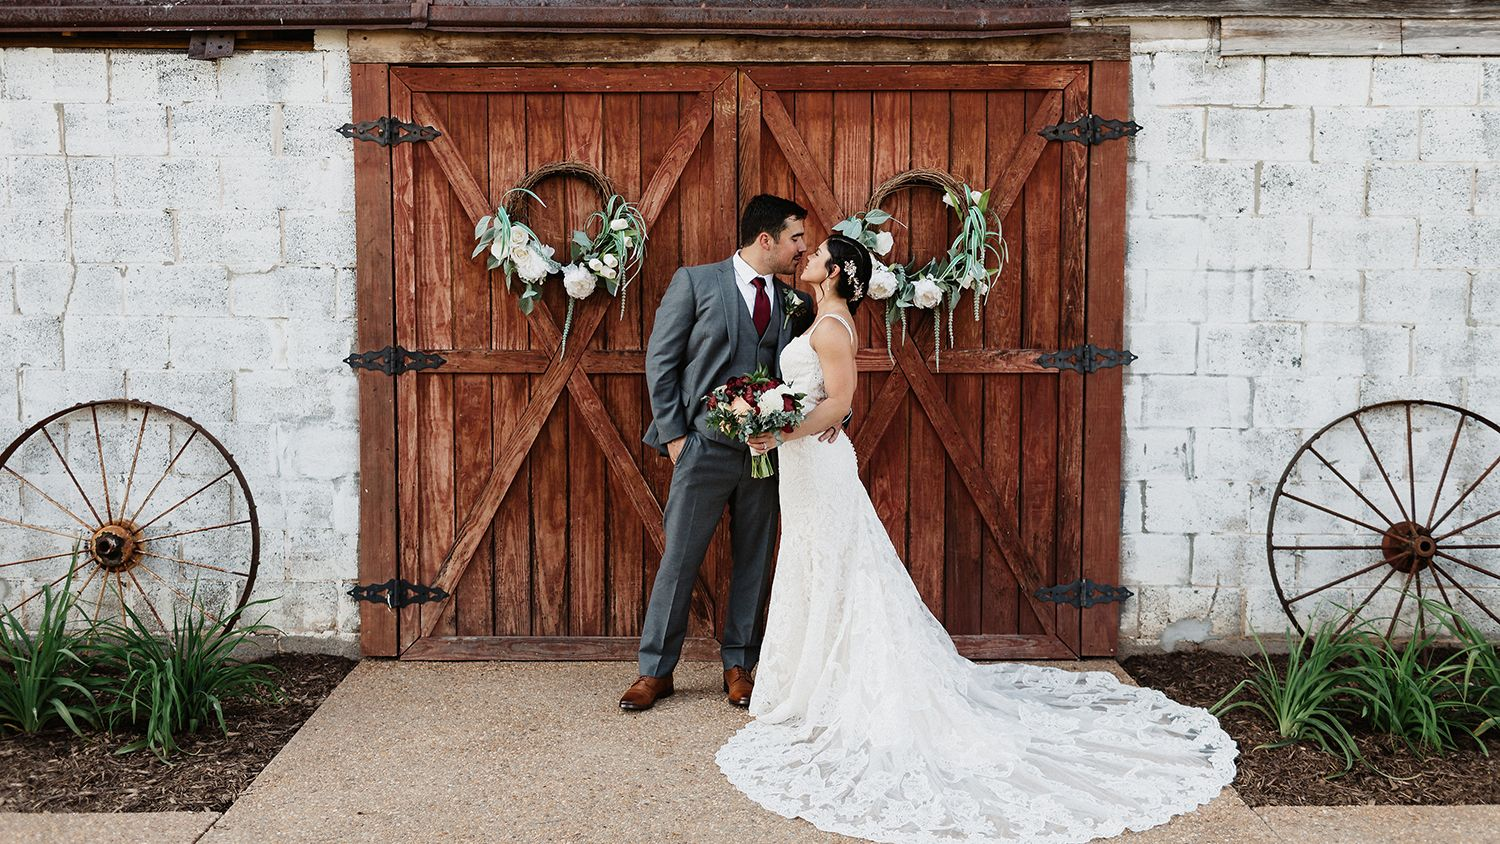 Rustic Chic Hay Barn Bride And Groom